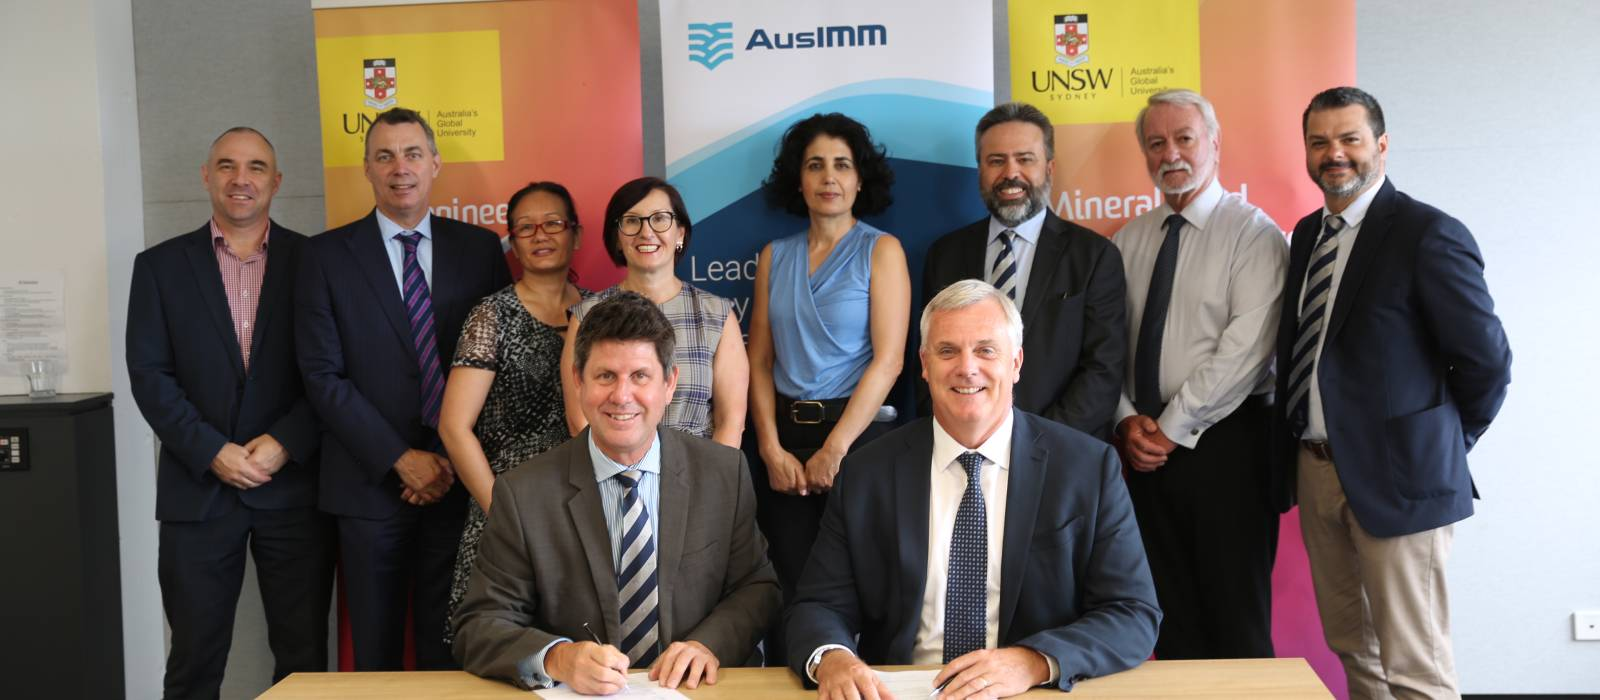 AusIMM CEO Stephen Durkin and Dean of Engineering UNSW Mark Hoffman lead the partnership signing.